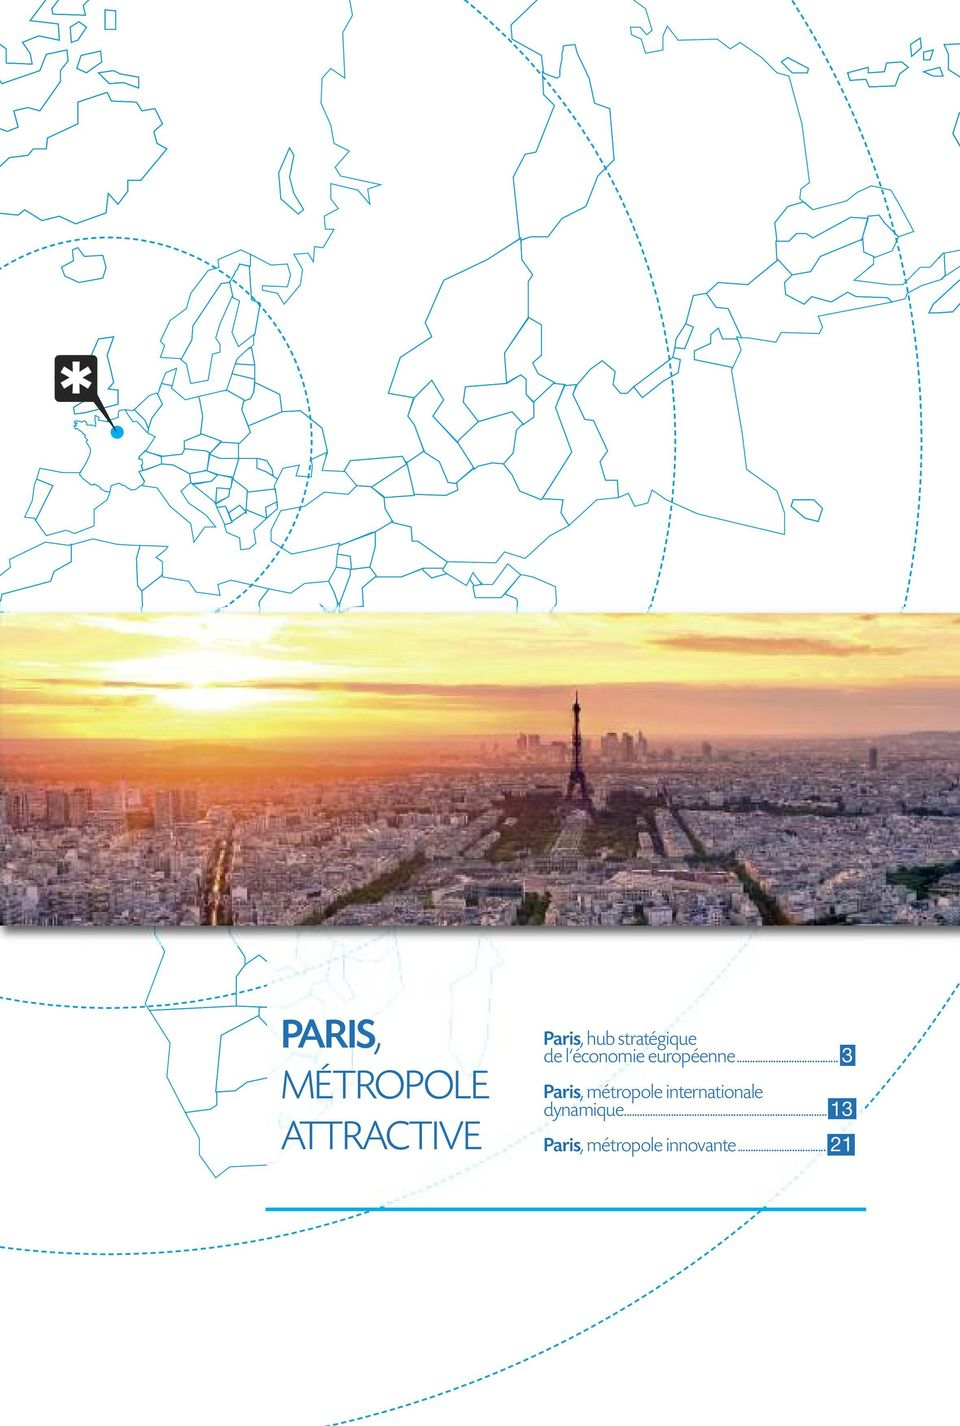 .. 3 Paris, métropole internationale